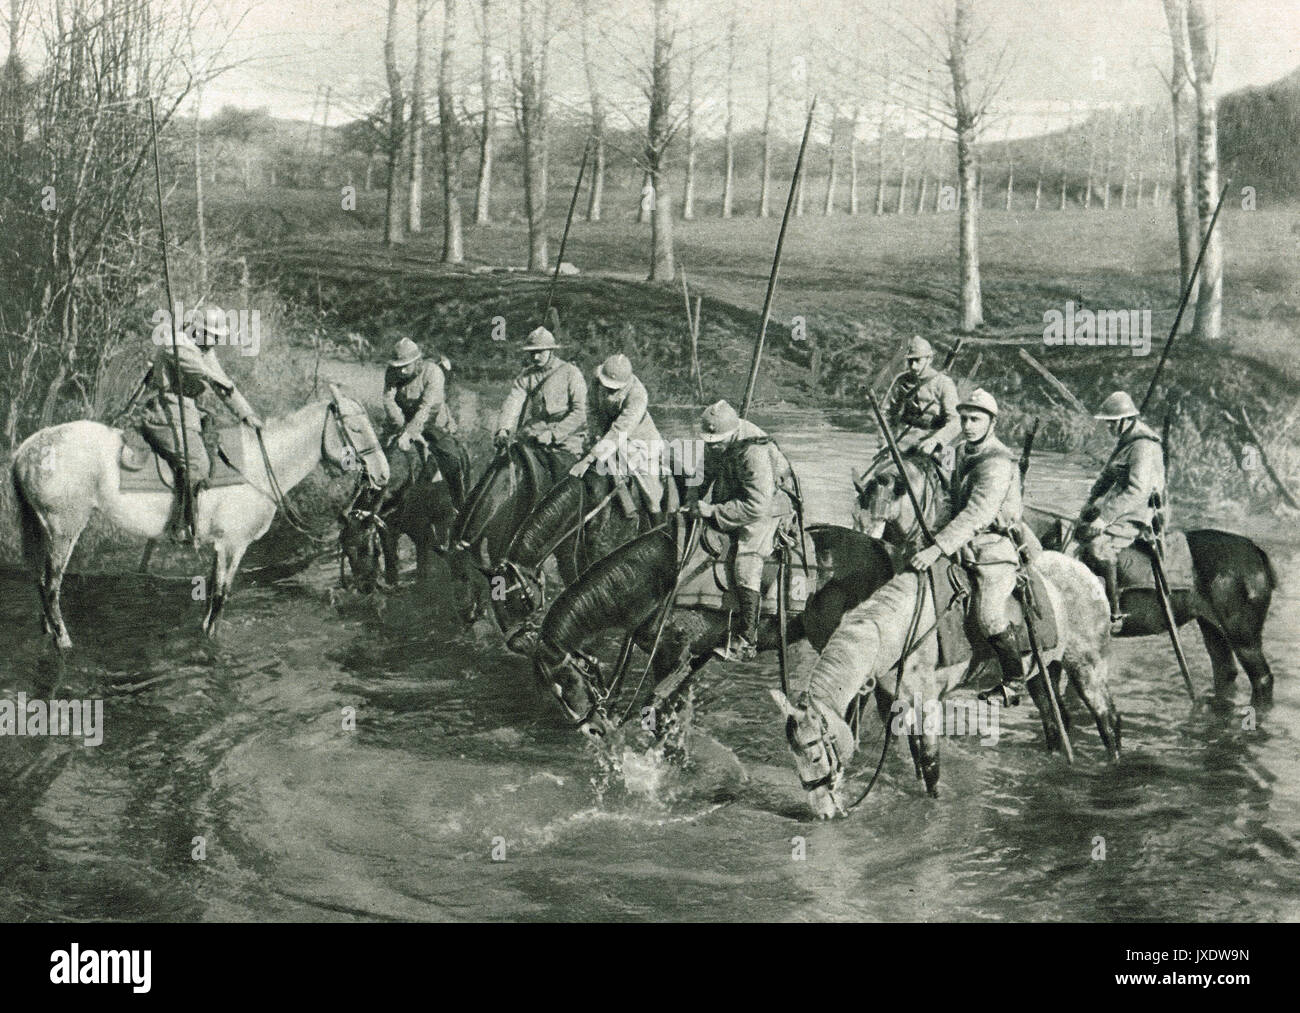 French cavalry watering horses, WW1 - Stock Image